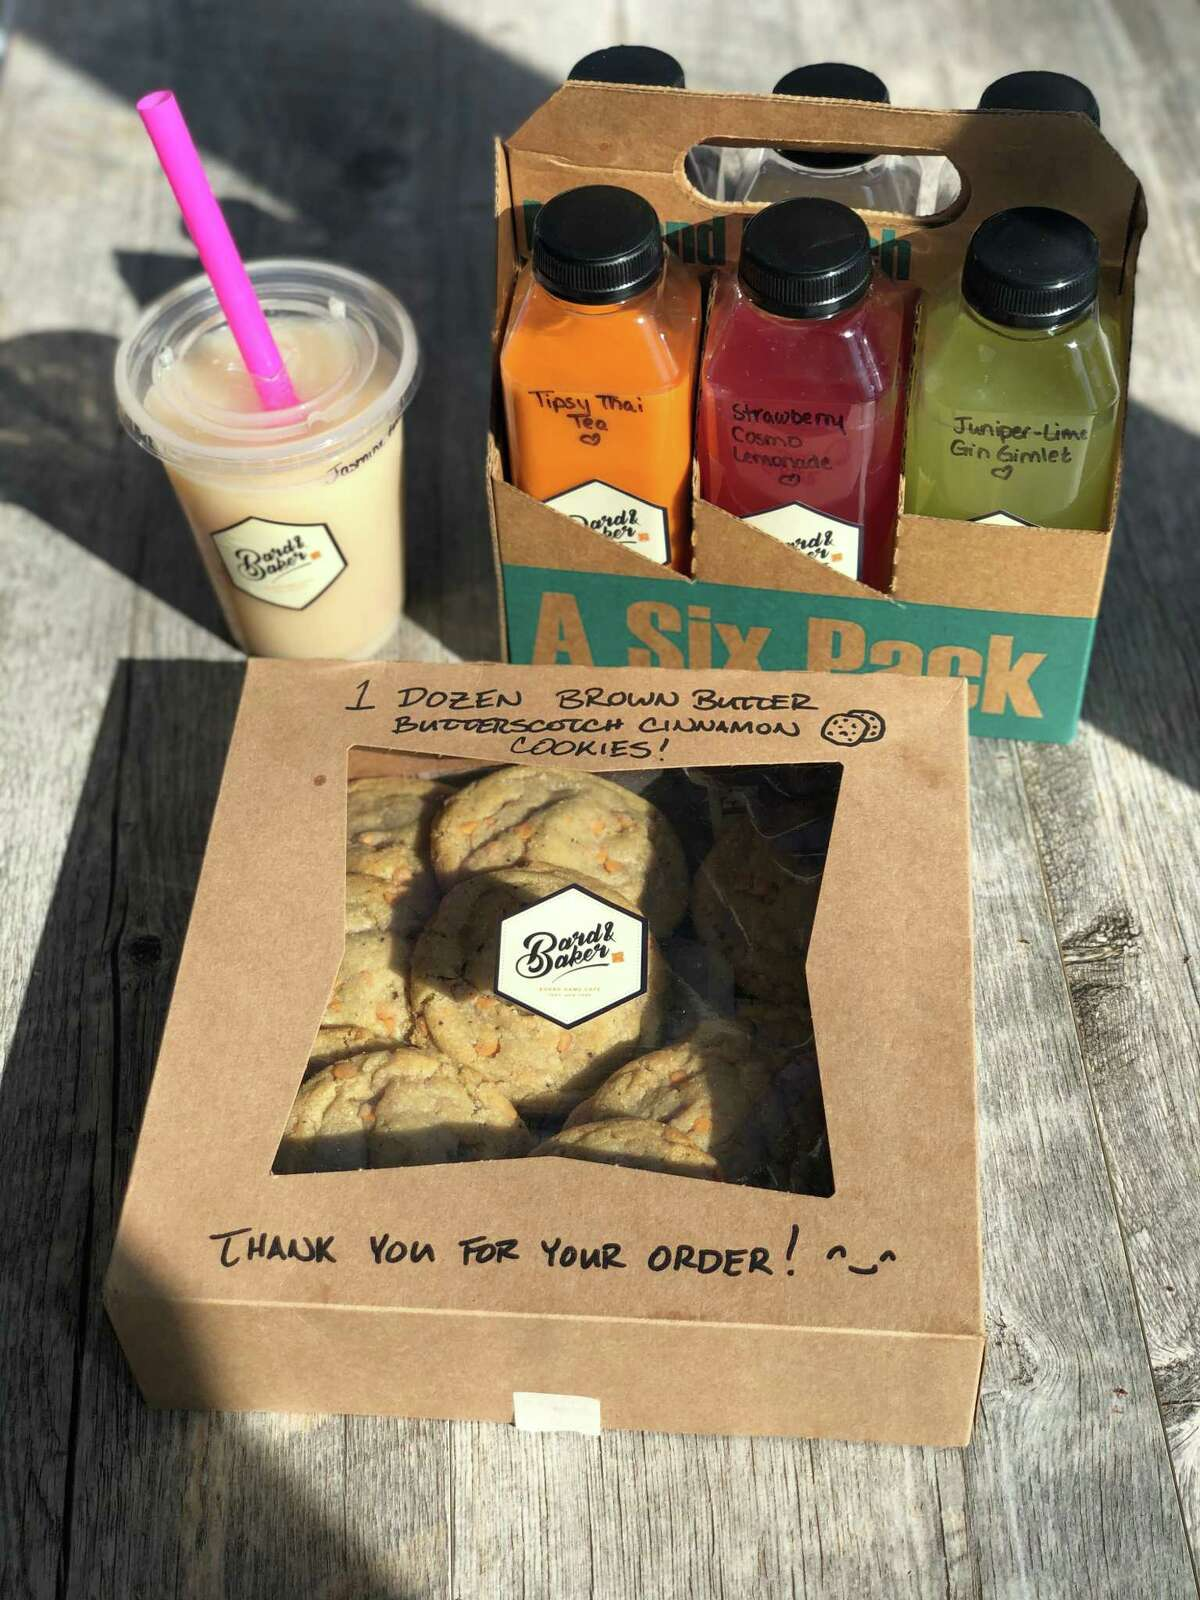 Takeout cookies, boba teas and boozy boba from Bard & Baker in Troy.